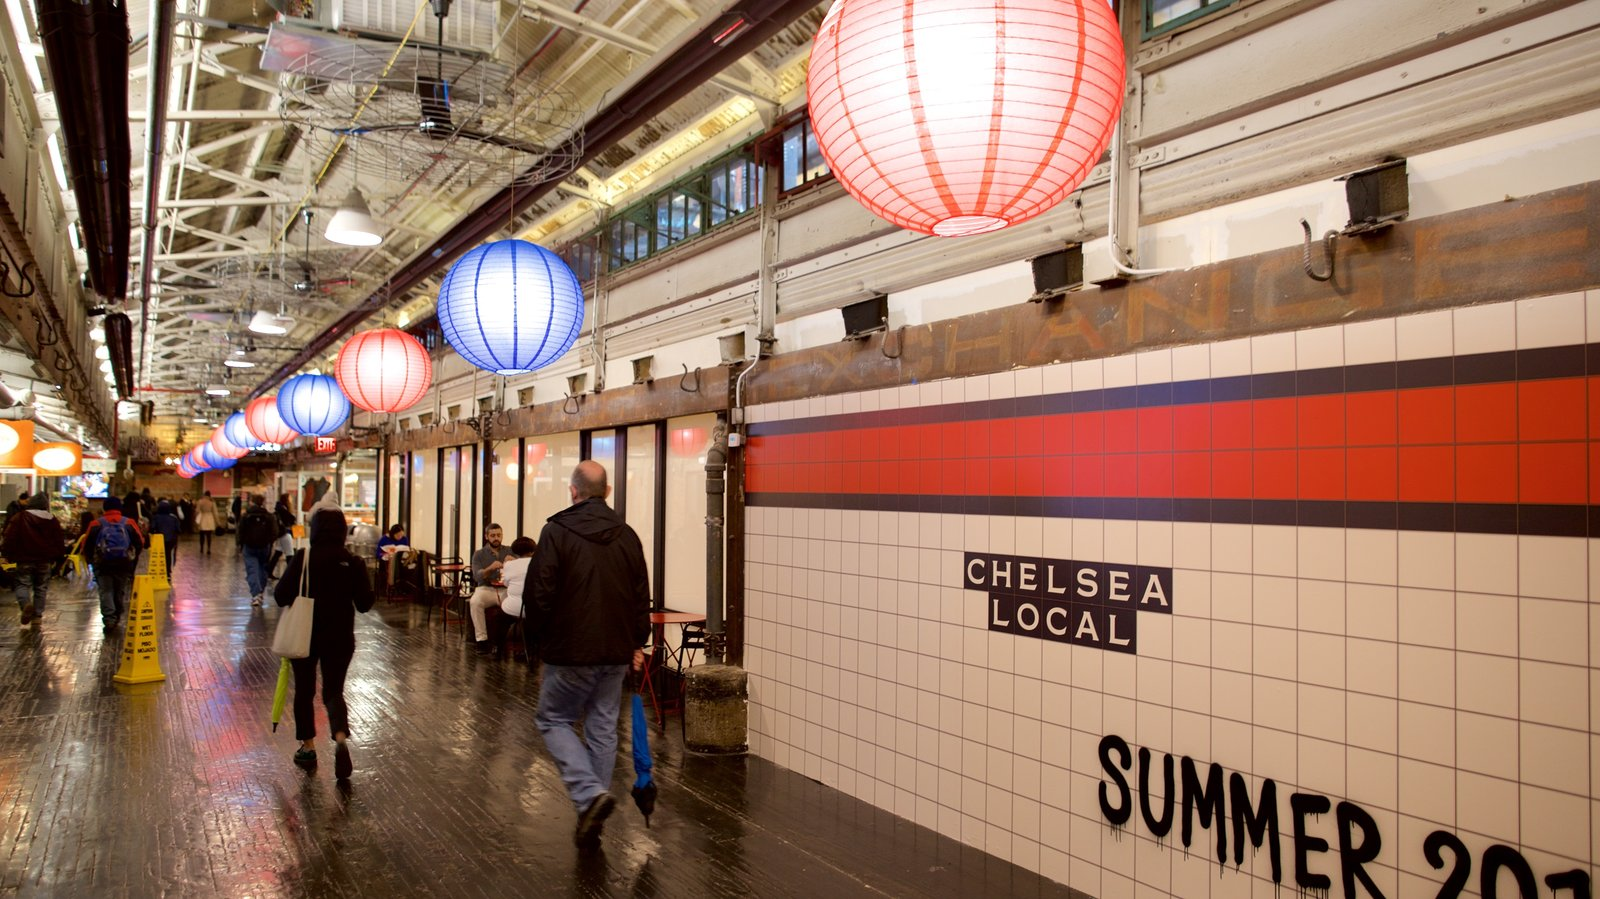 Chelsea Market showing signage and interior views